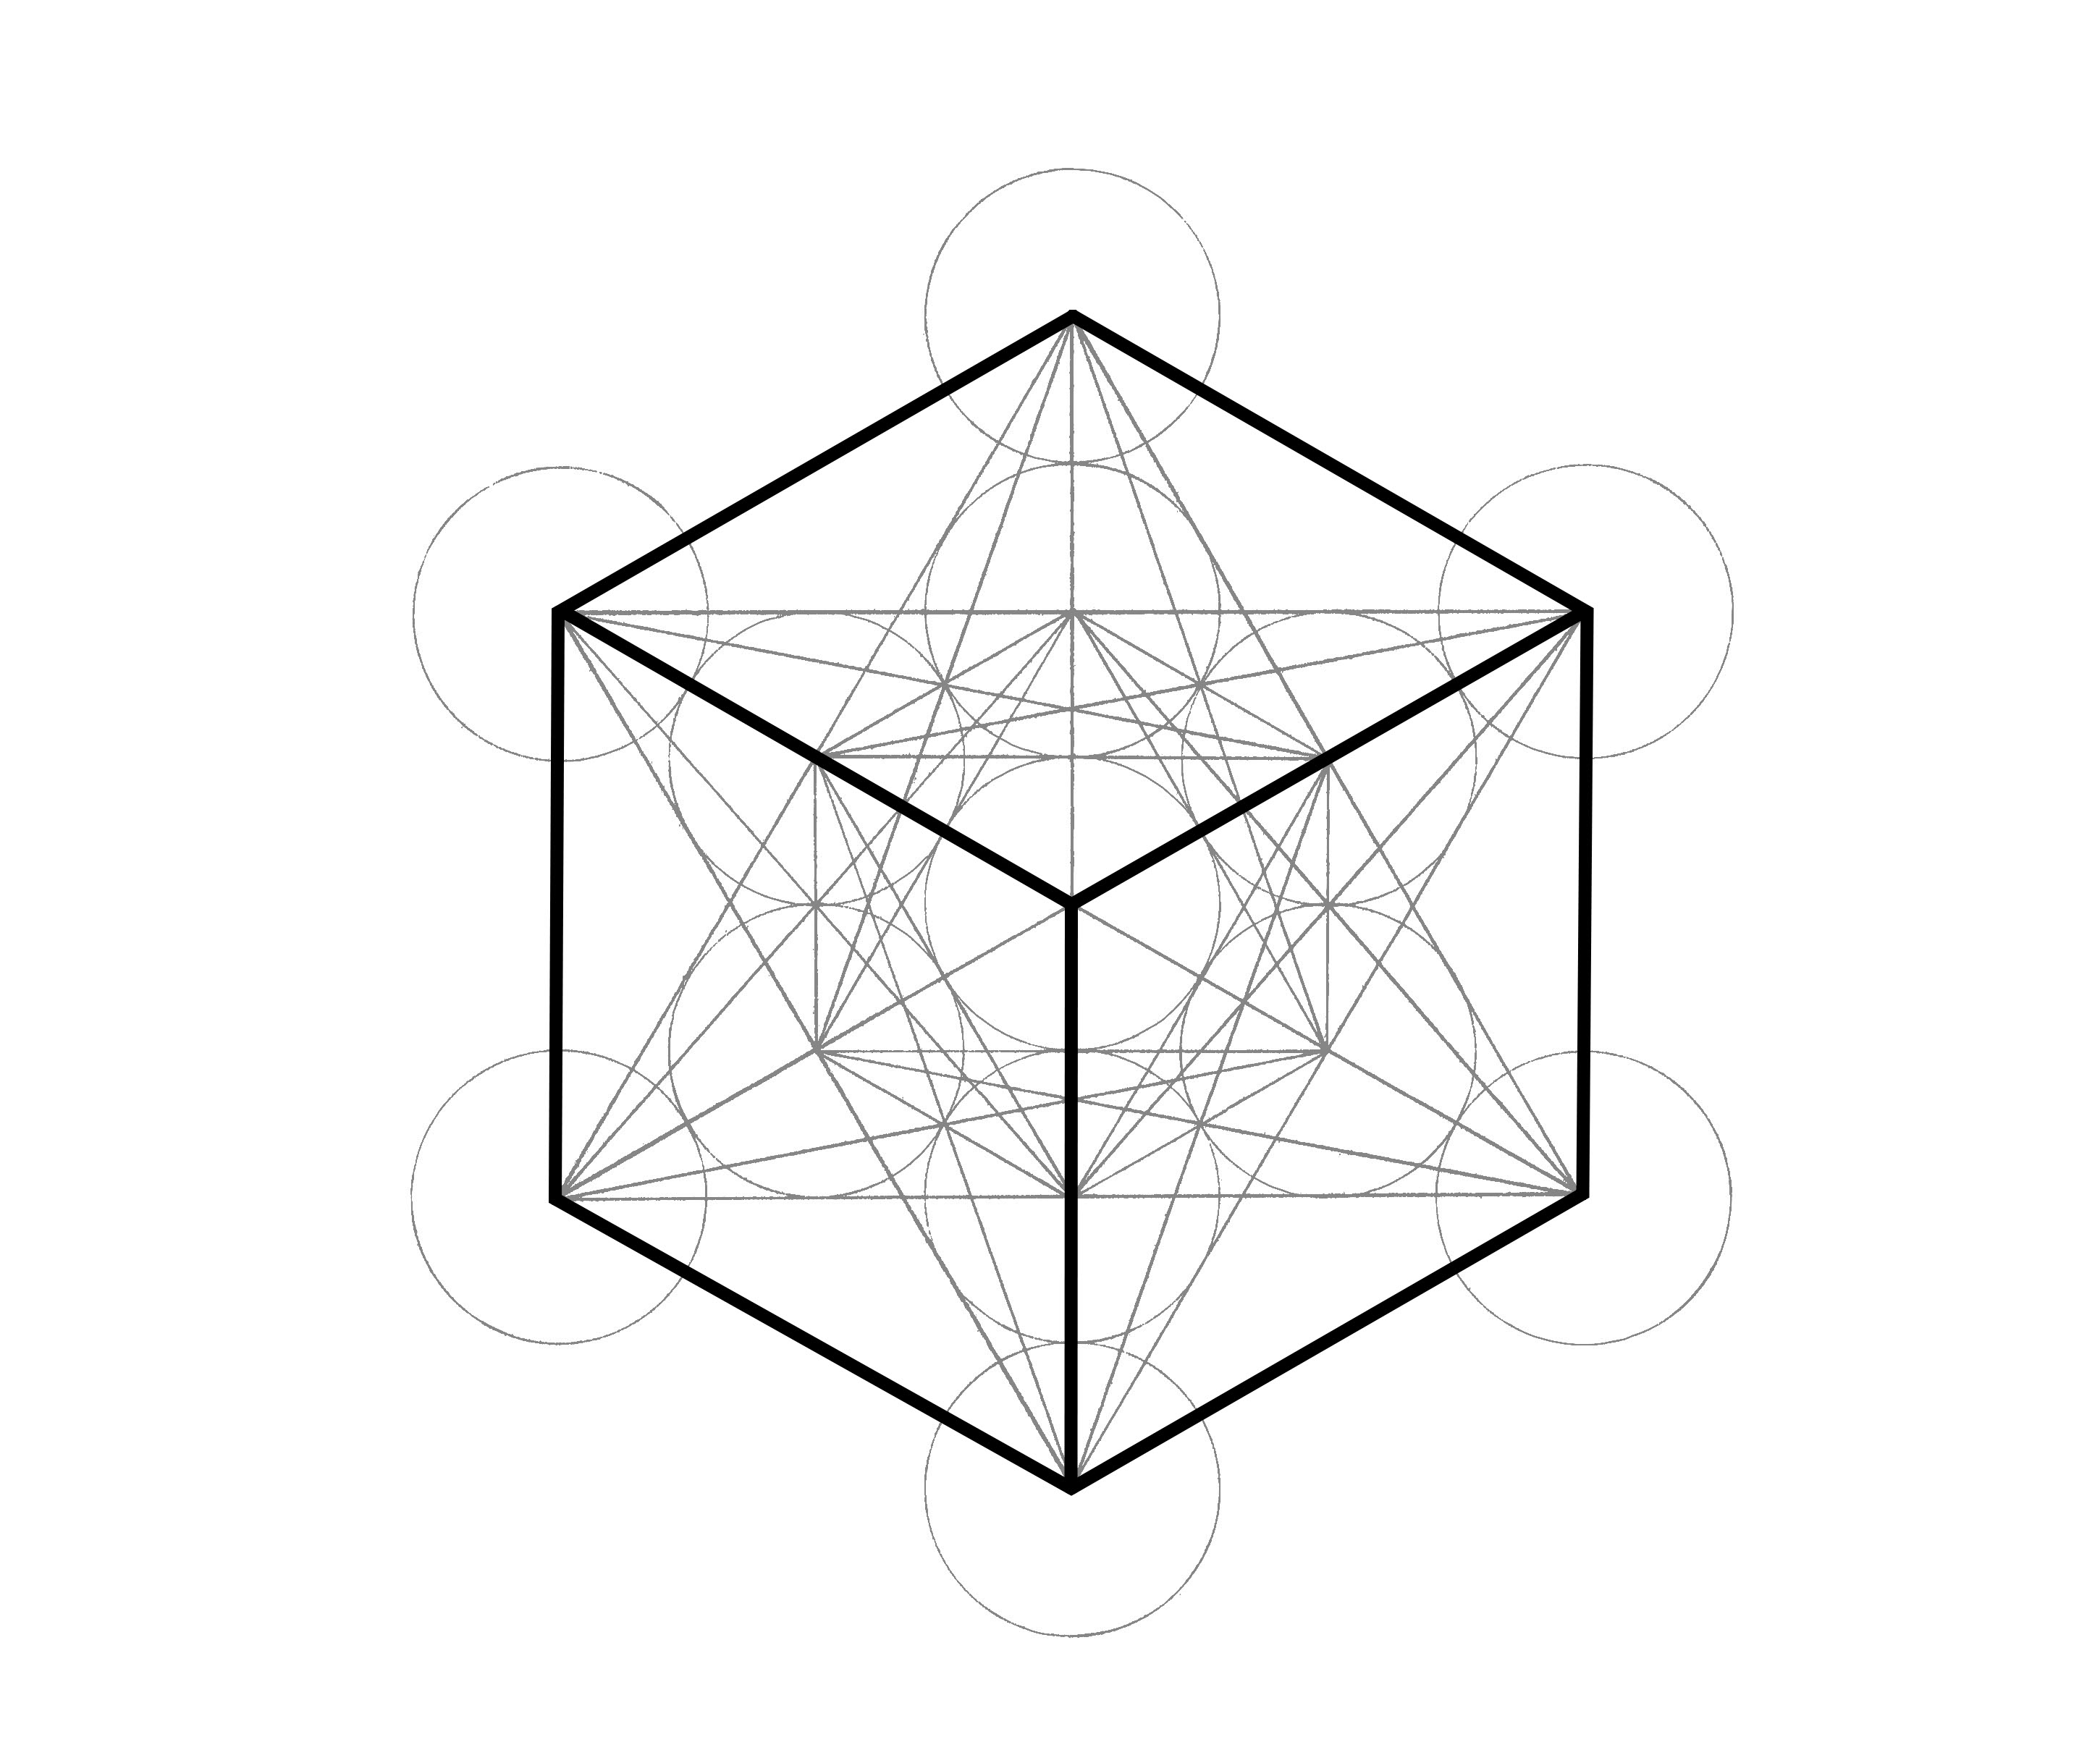 Metatron S Cube How To Draw It The Chemical Marriage